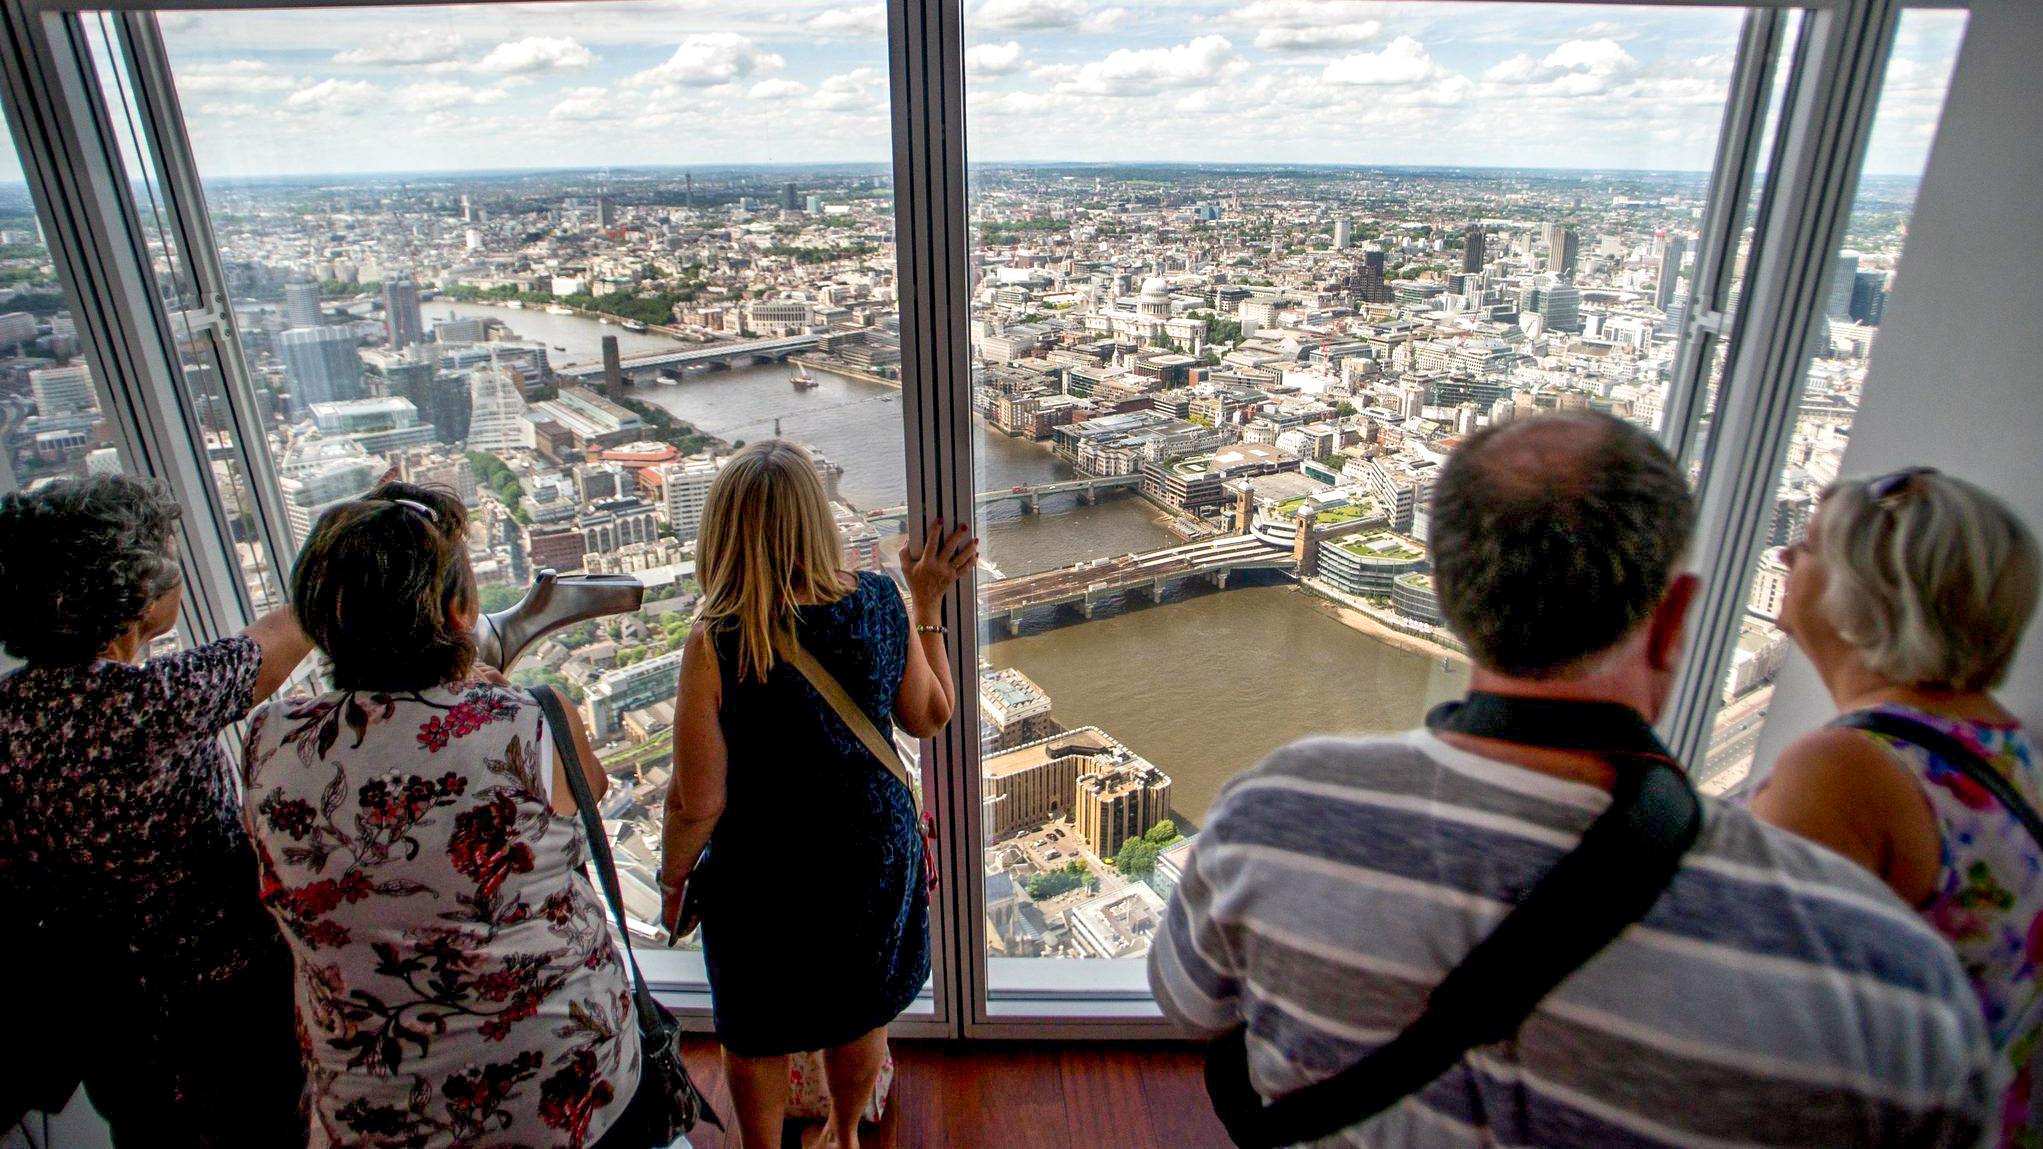 La plateforme d'observation The View from The Shard